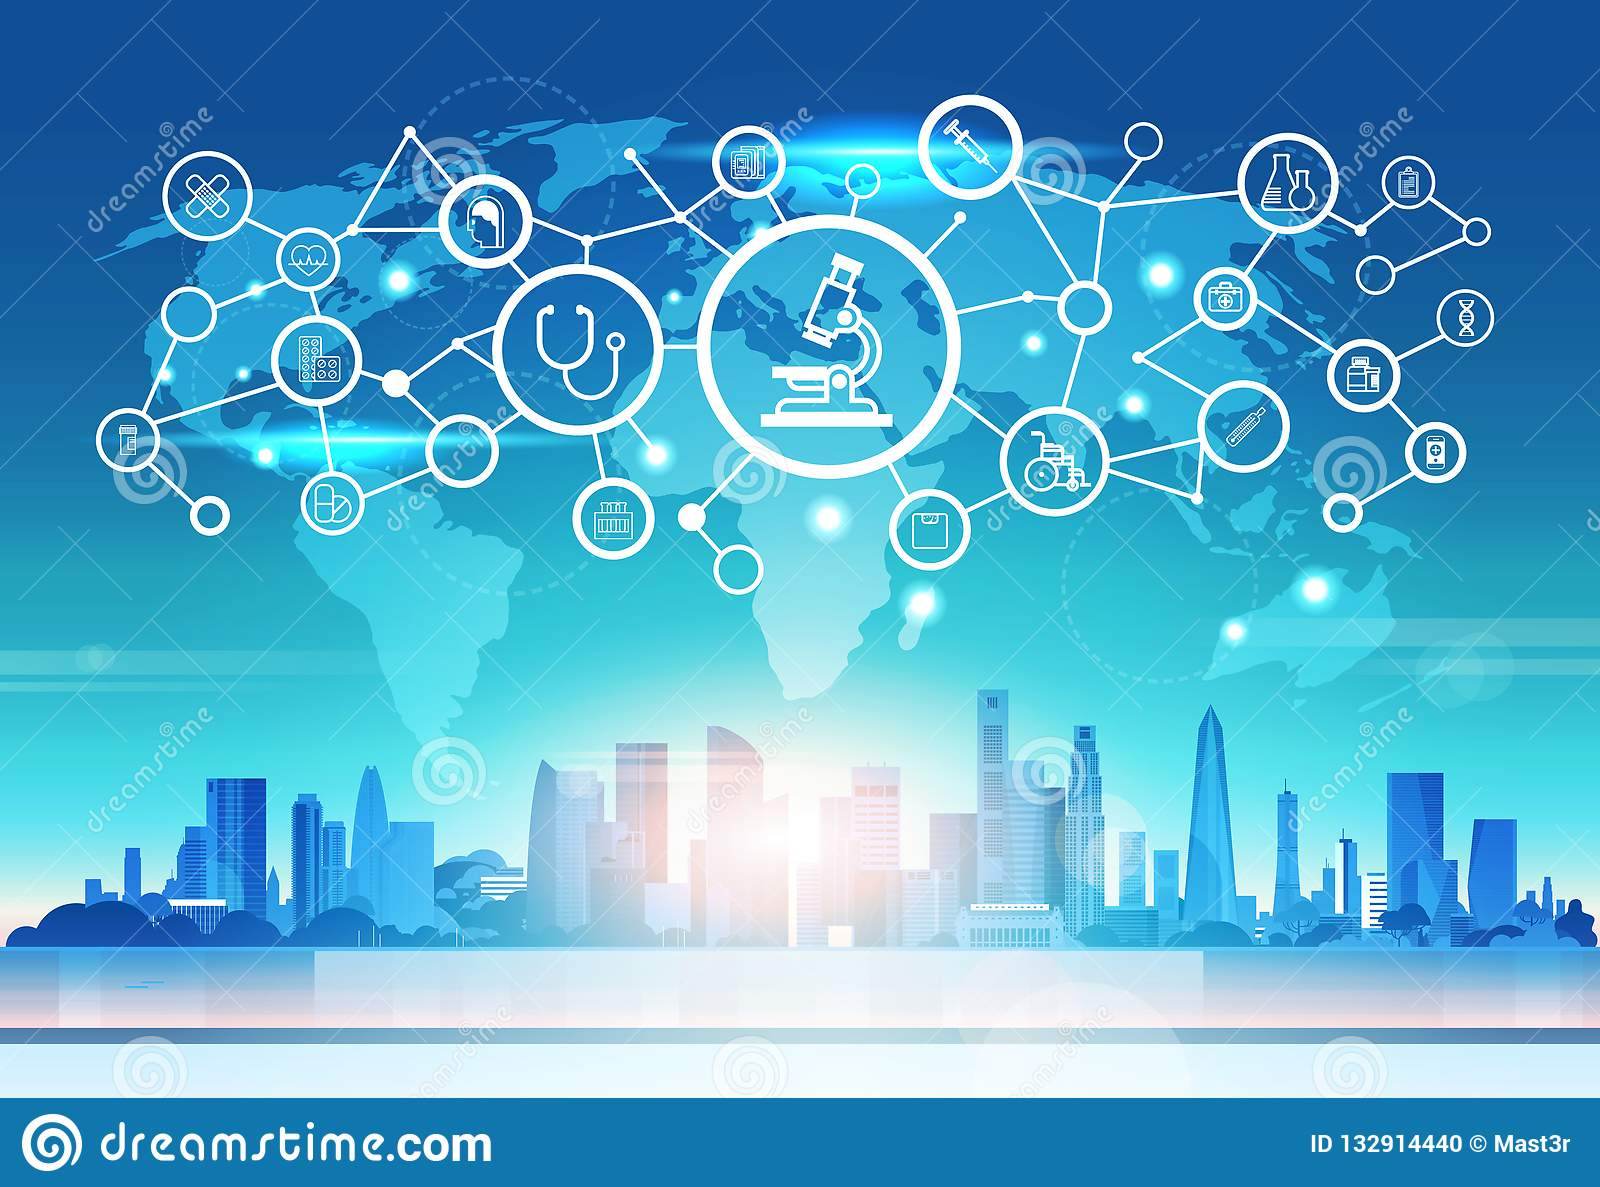 World map futuristic microscope icon interface medical healthcare network connection concept cityskape sunset background